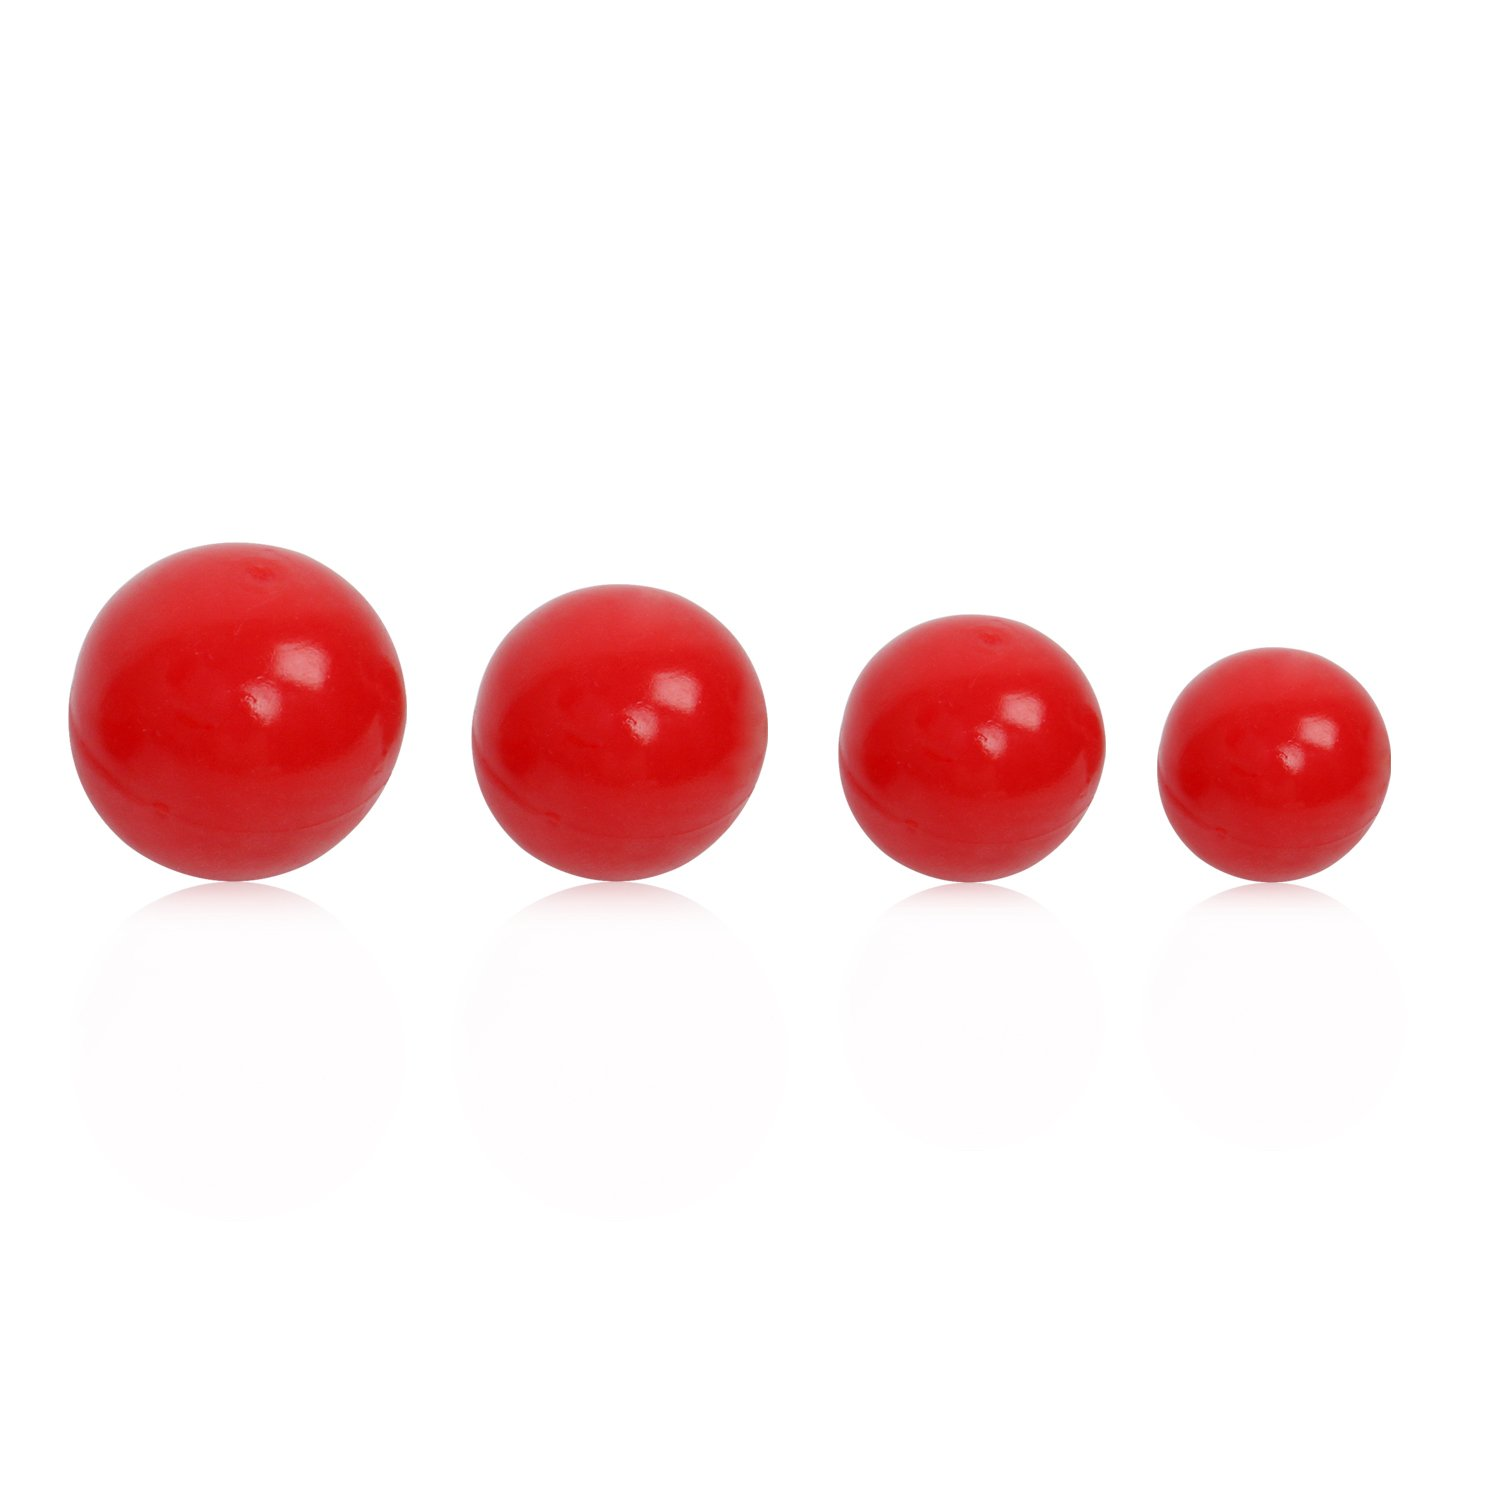 HBuir Dog Bouncy Ball Rubber Toy,Pack of 4(M/L/XL/XXL)